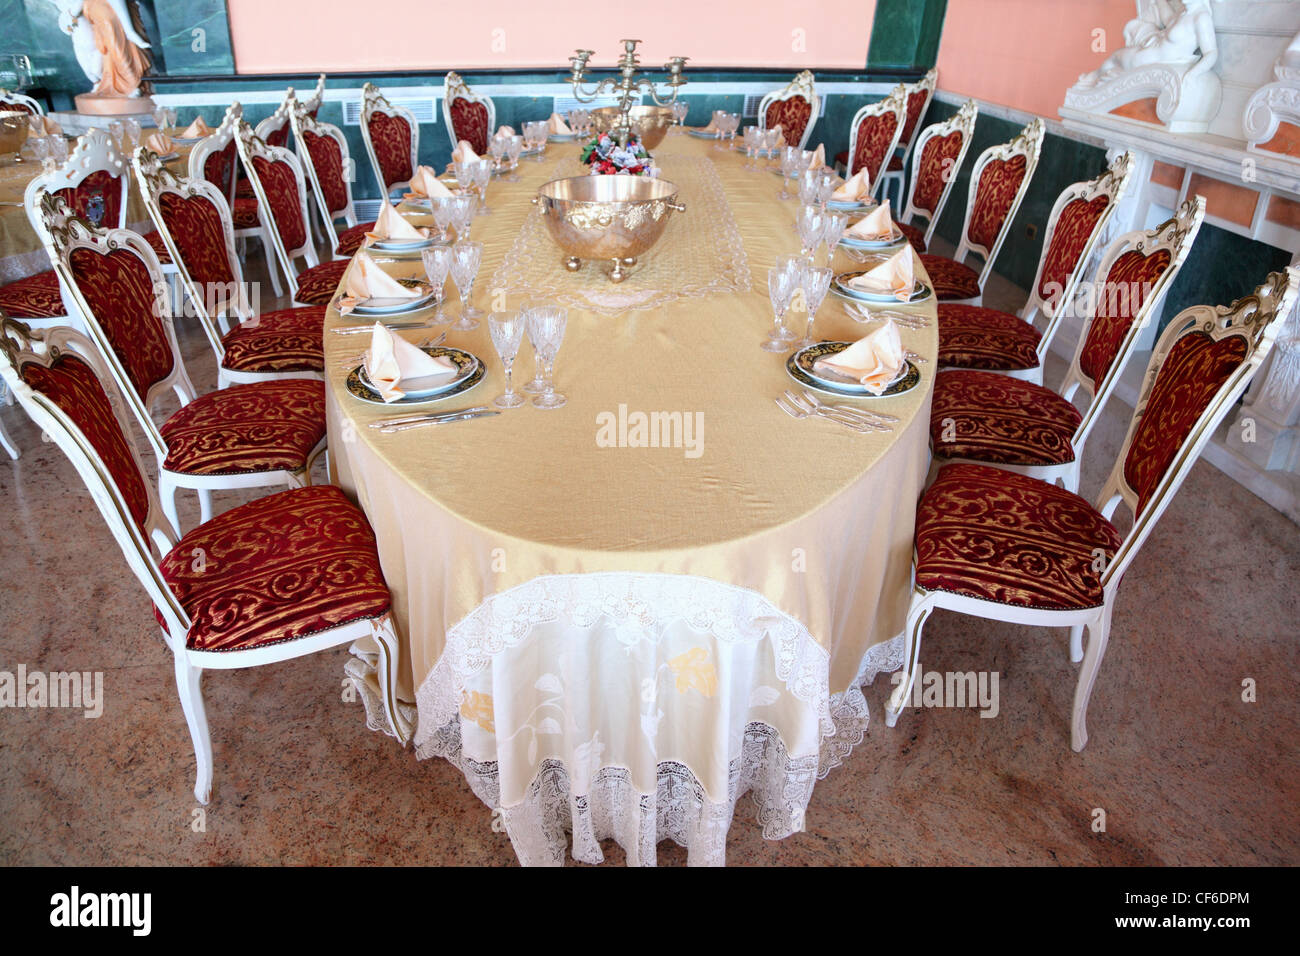 Big Oval Dinner Table With Candlestick, Copper And Empty Dishes: Plates  With Placemat,